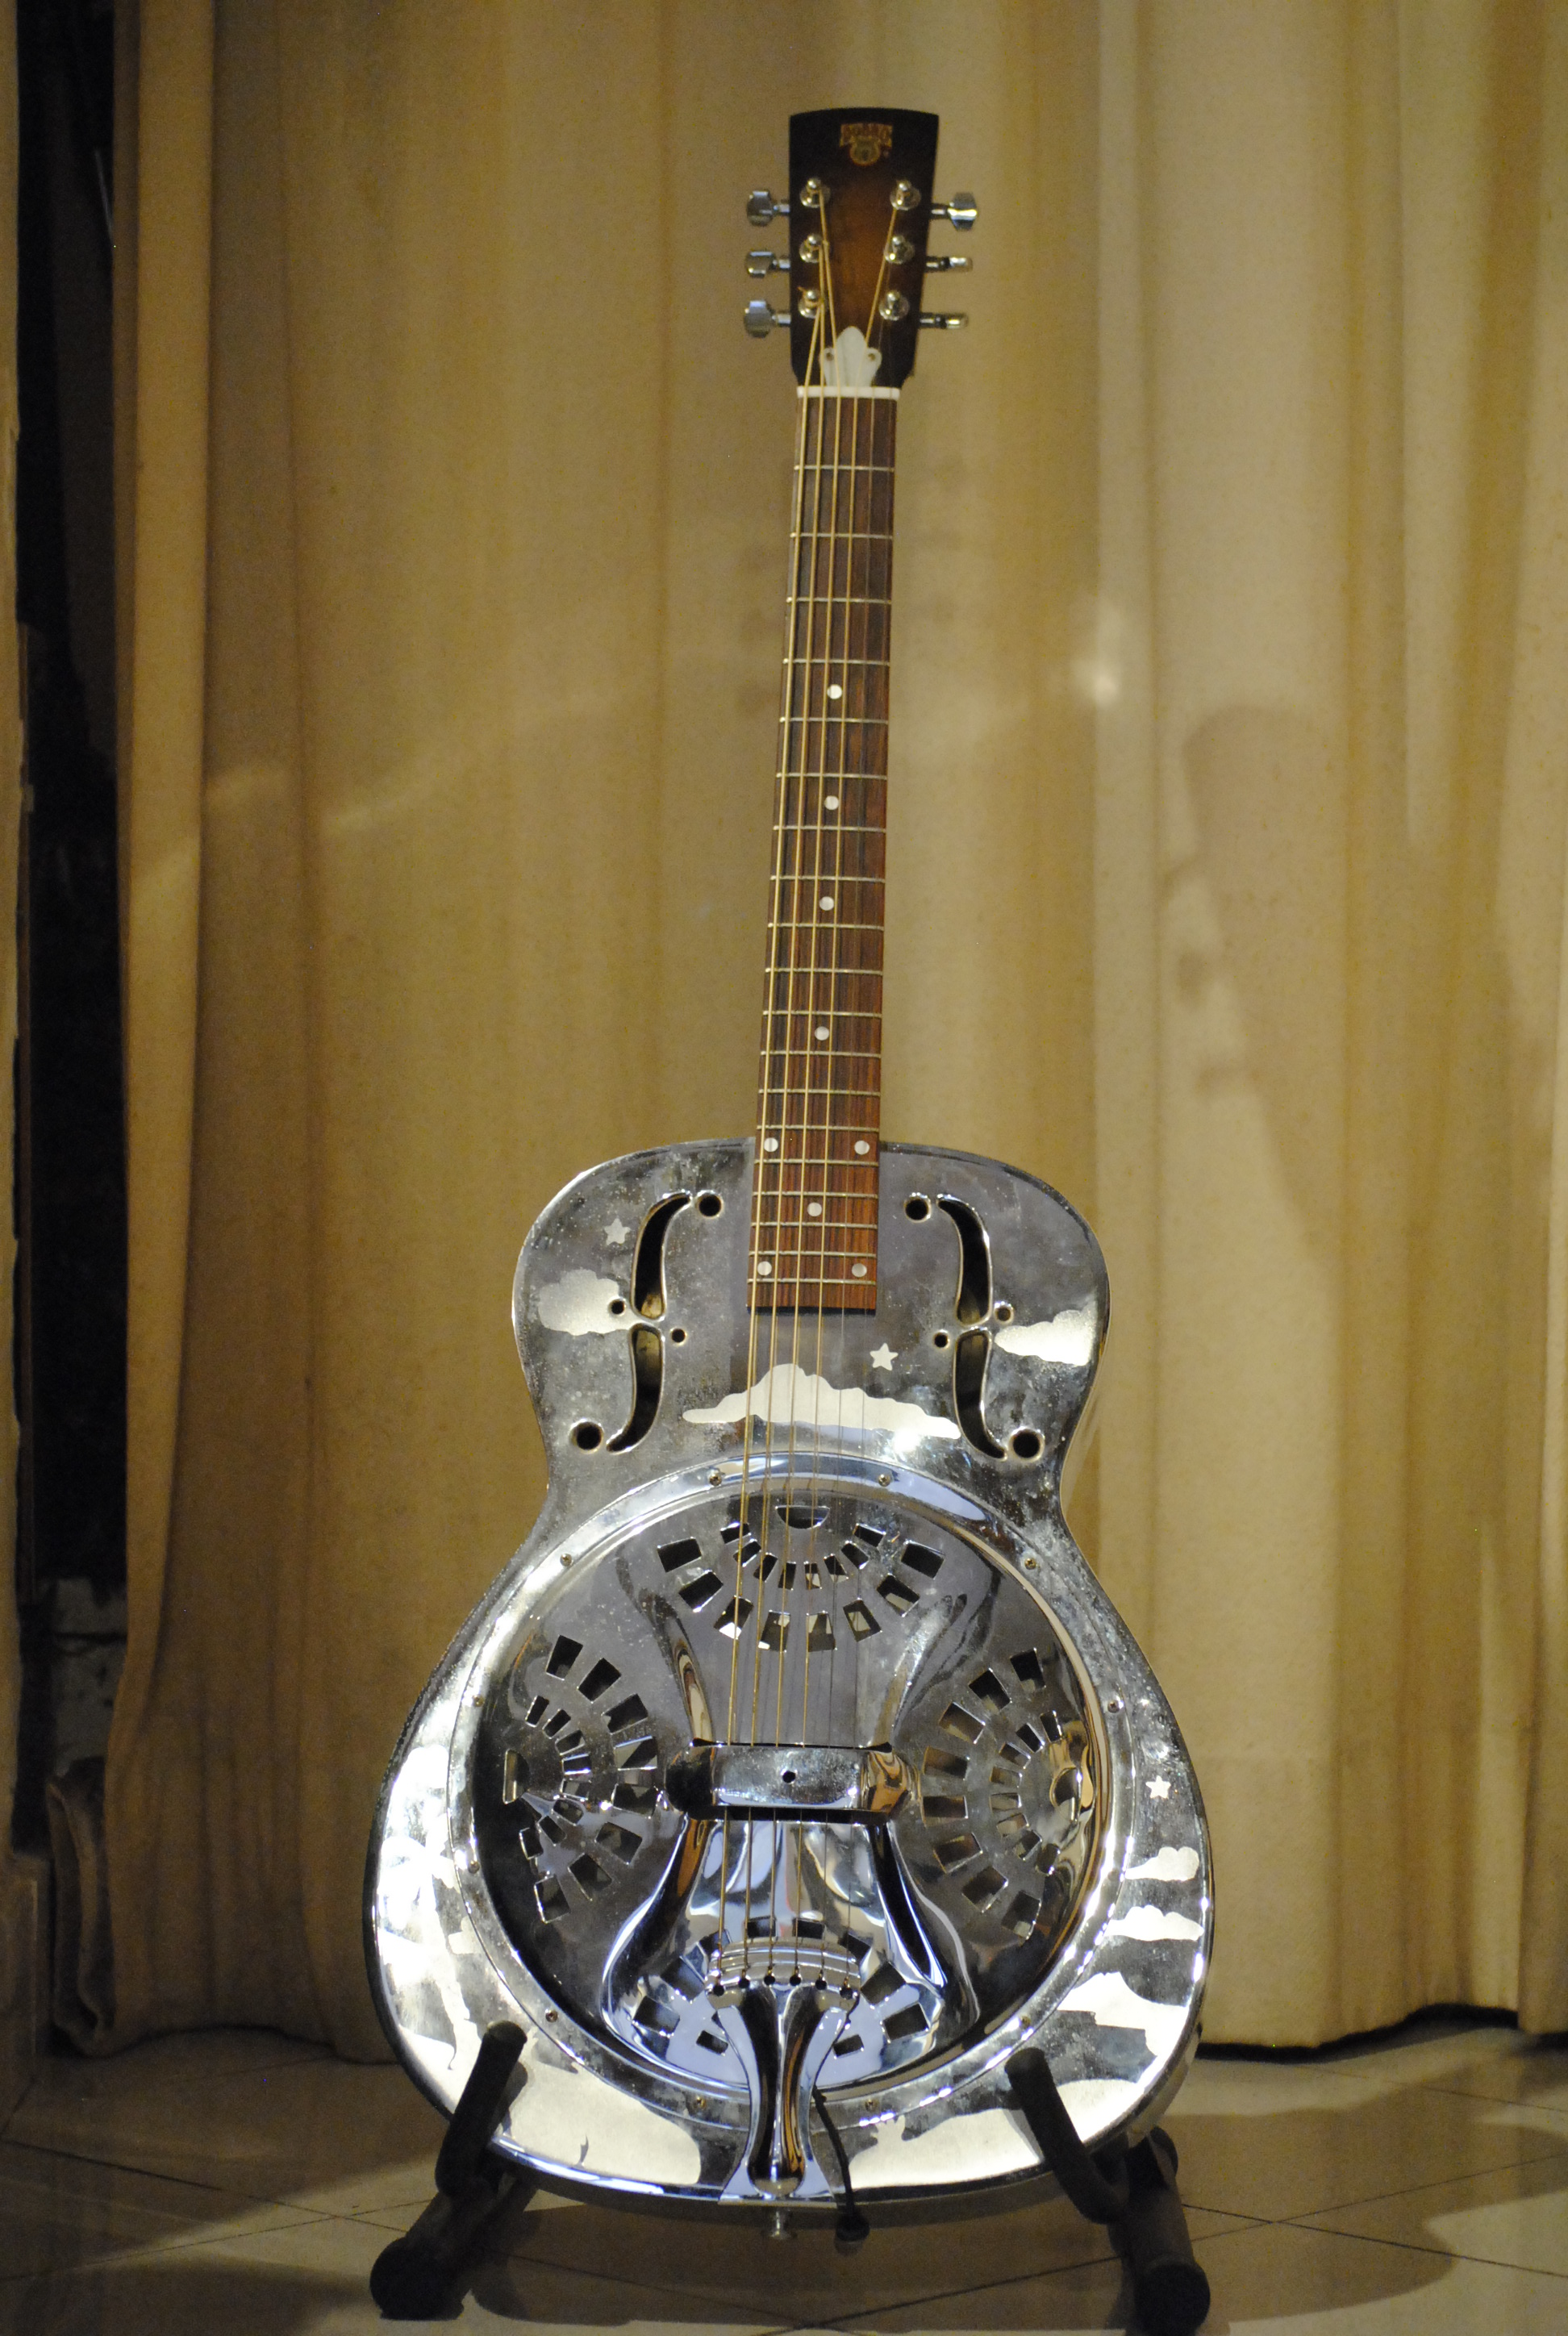 dobro h 33 1994 chrome steel guitar for sale rome vintage guitars. Black Bedroom Furniture Sets. Home Design Ideas